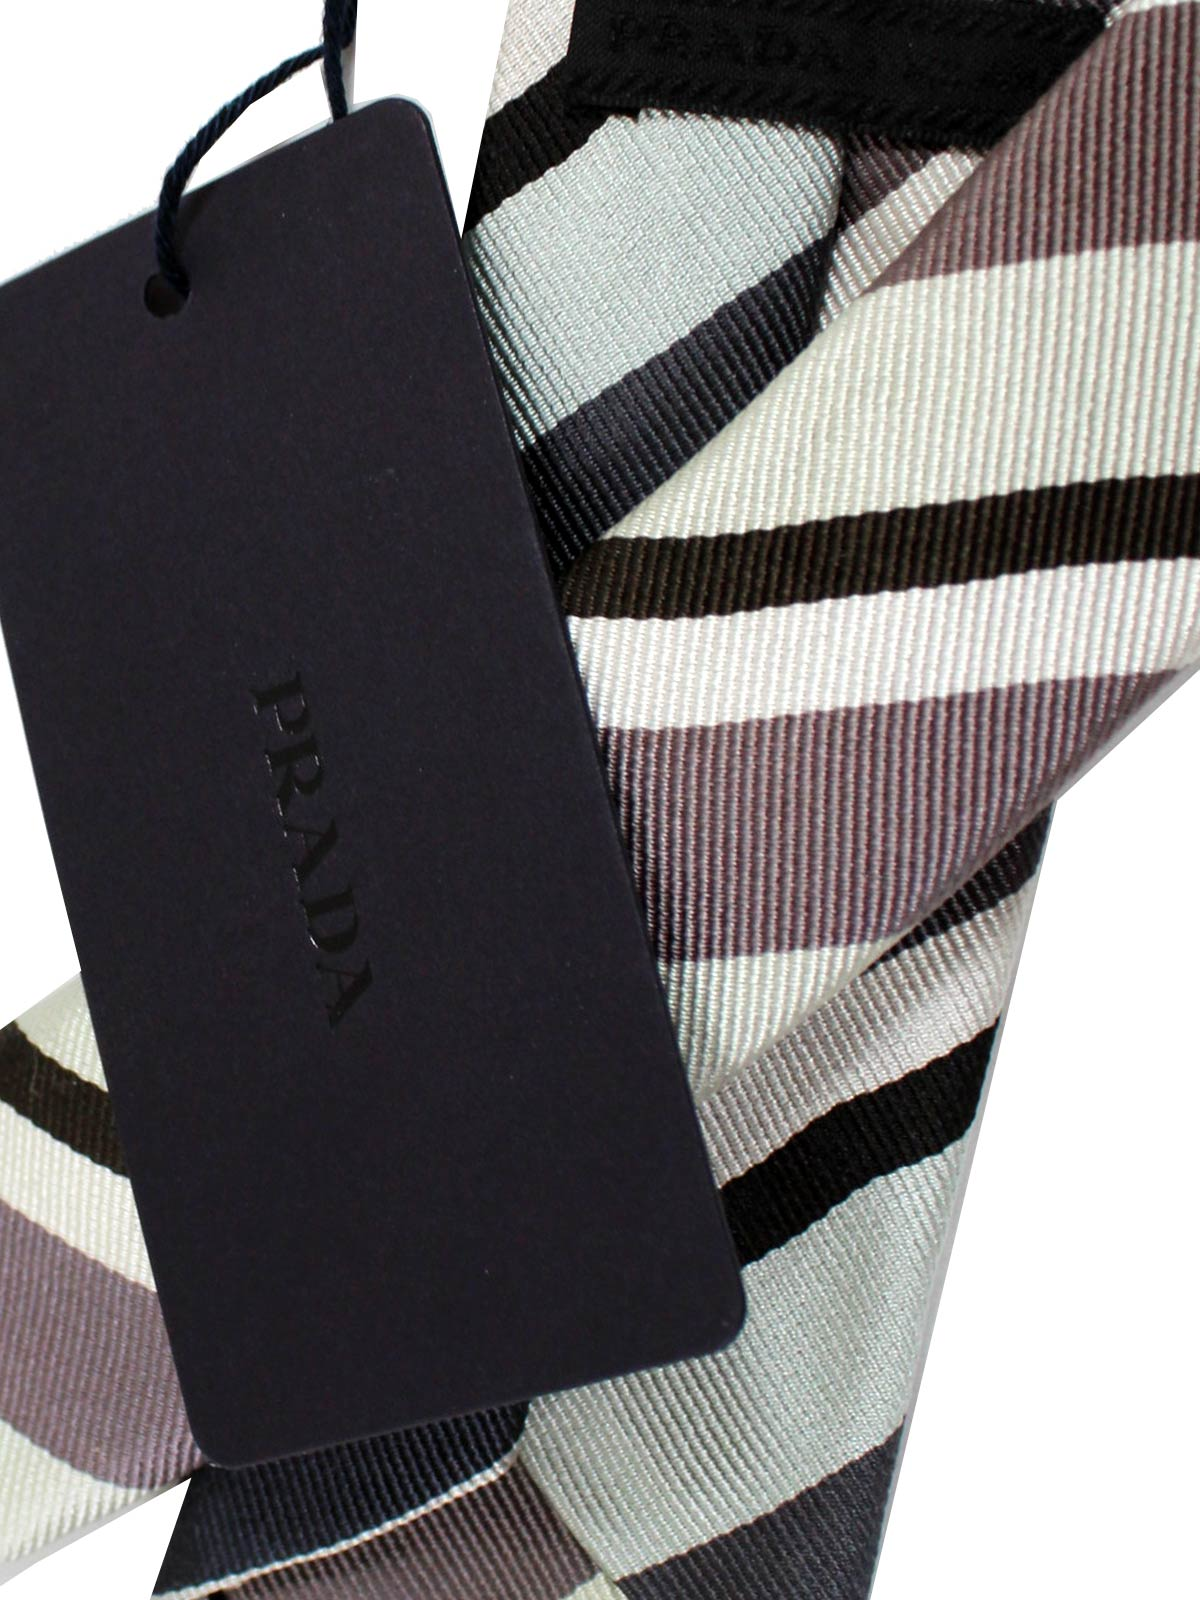 Prada Tie Taupe Mint Stripes